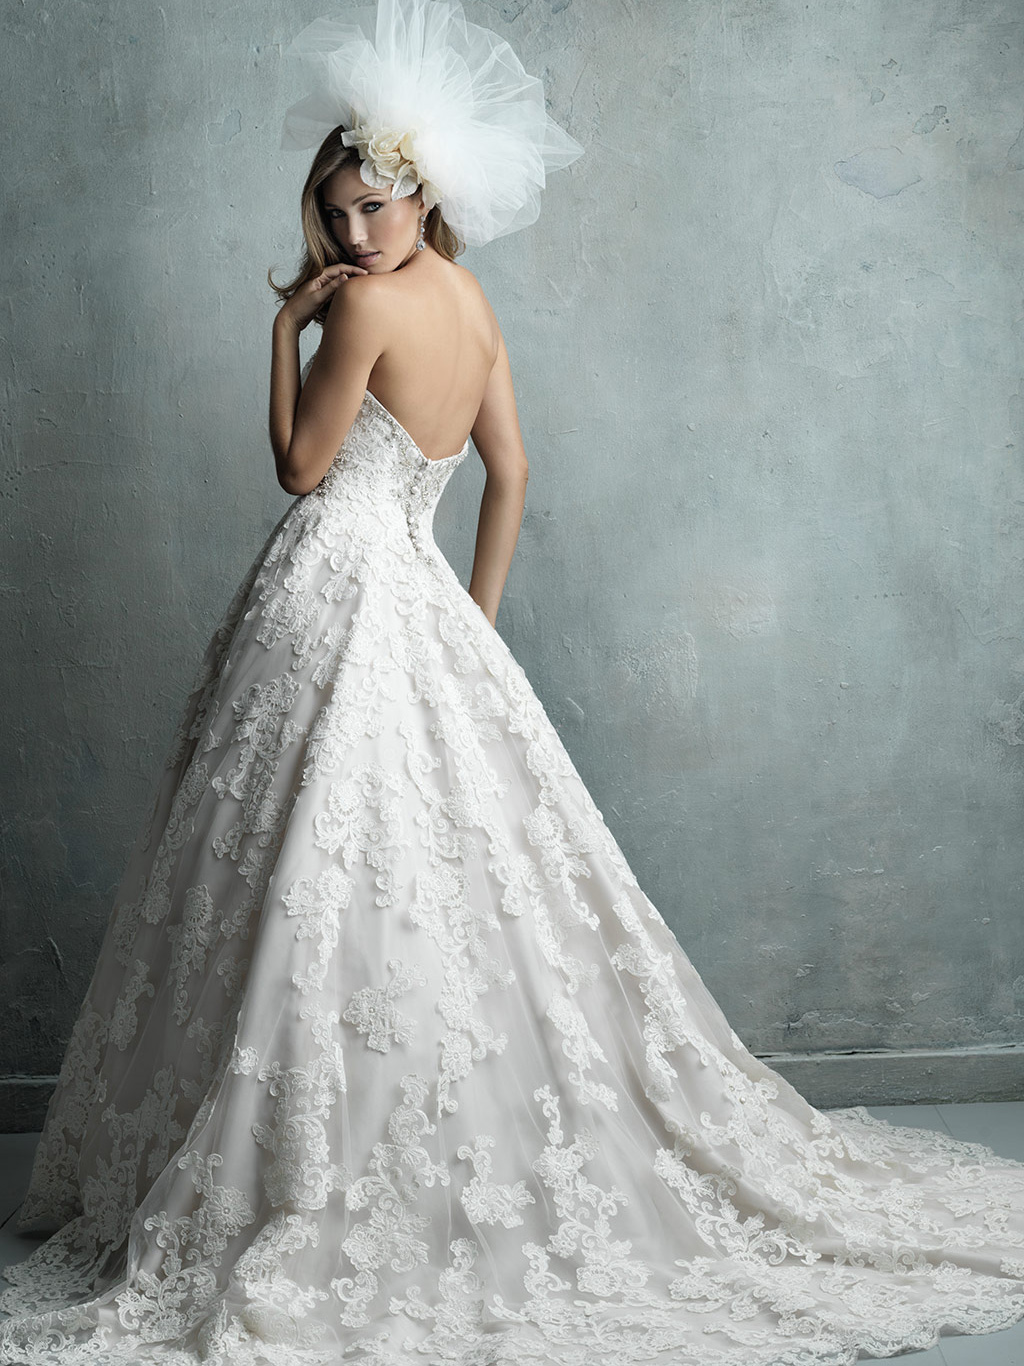 Allure Couture Sweetheart Lace Wedding Dress C328DimitraDesignscom